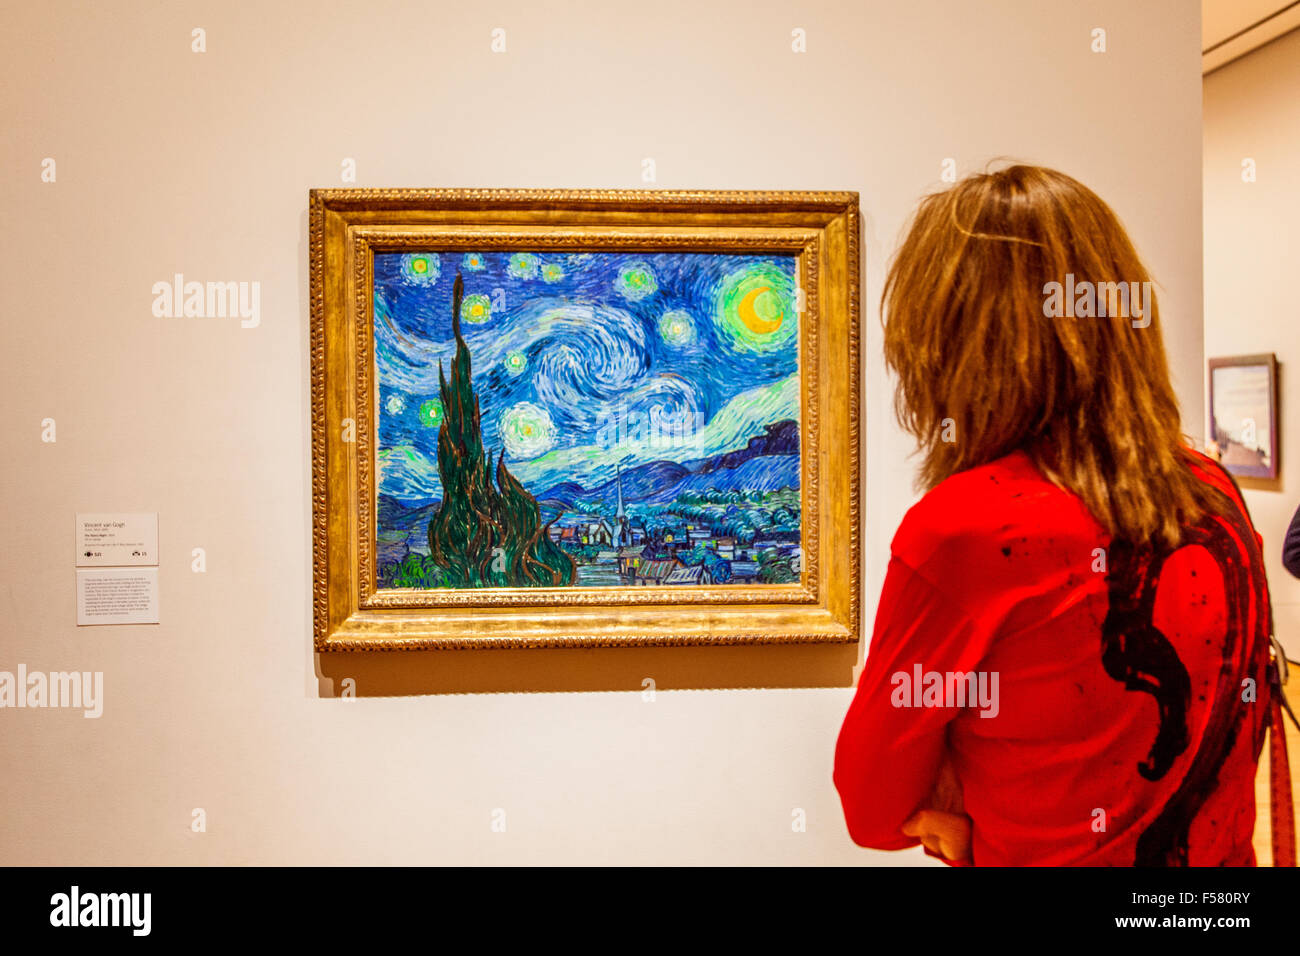 an assessment of the painting starry night by vincent van gogh The starry night vincent van gogh 1889 moma the museum of modern art from the collection of  the painting, like its daytime companion, the olive trees, is rooted.